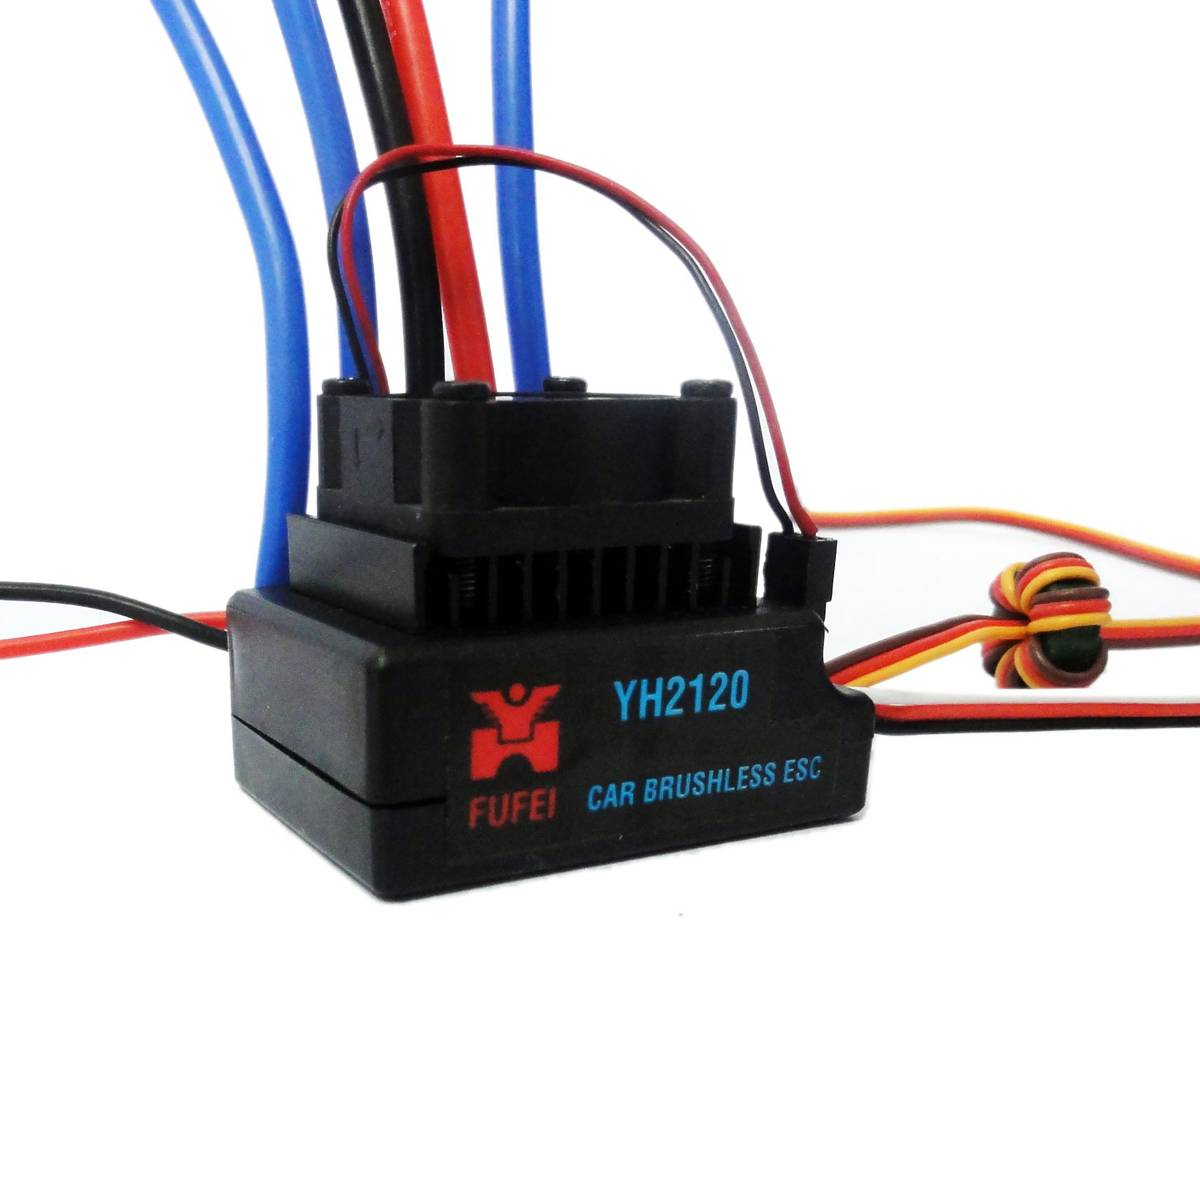 120a brushless esc for rc car for 1/8 scale car